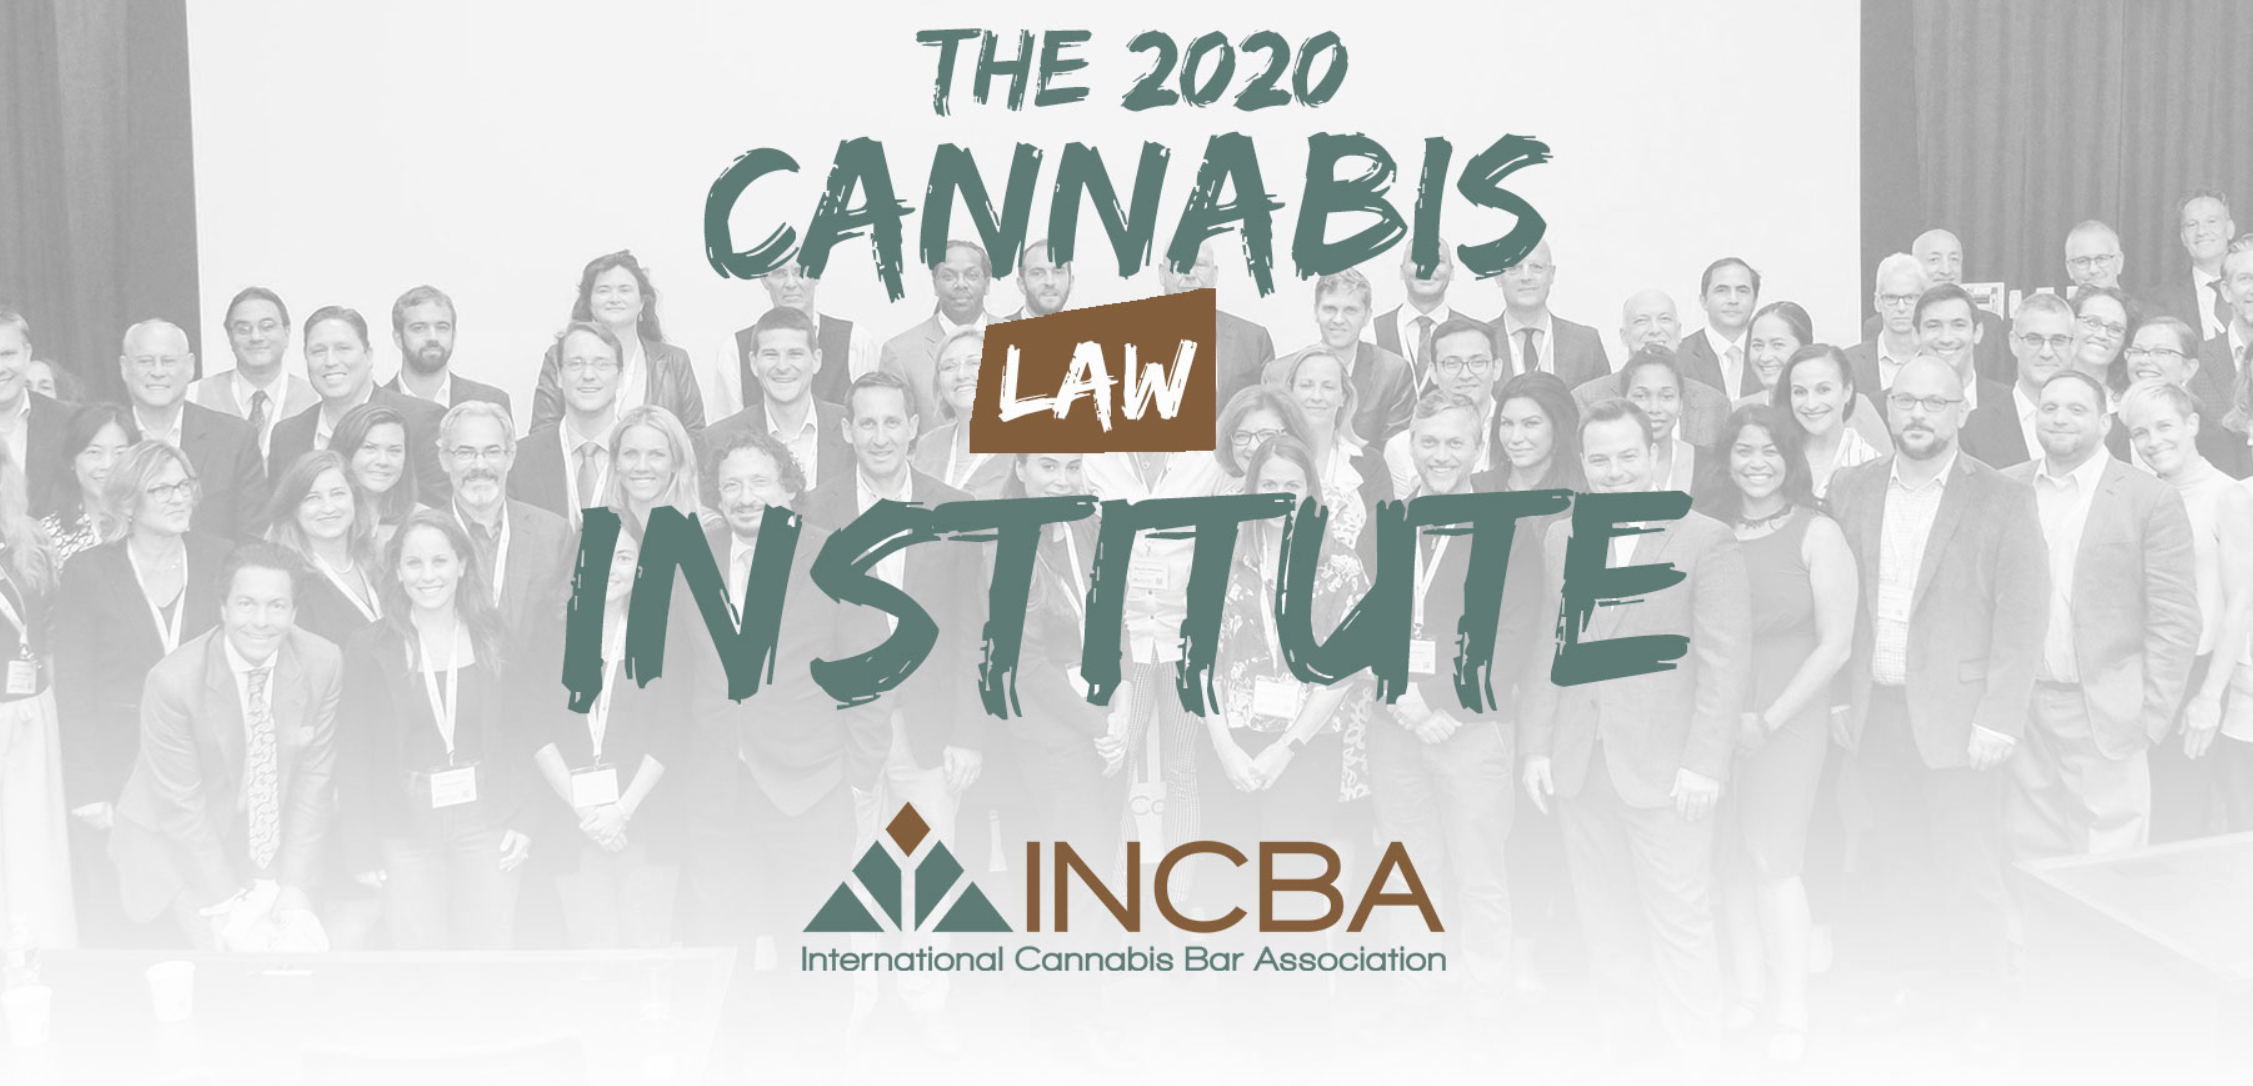 The Cannabis Law Institute